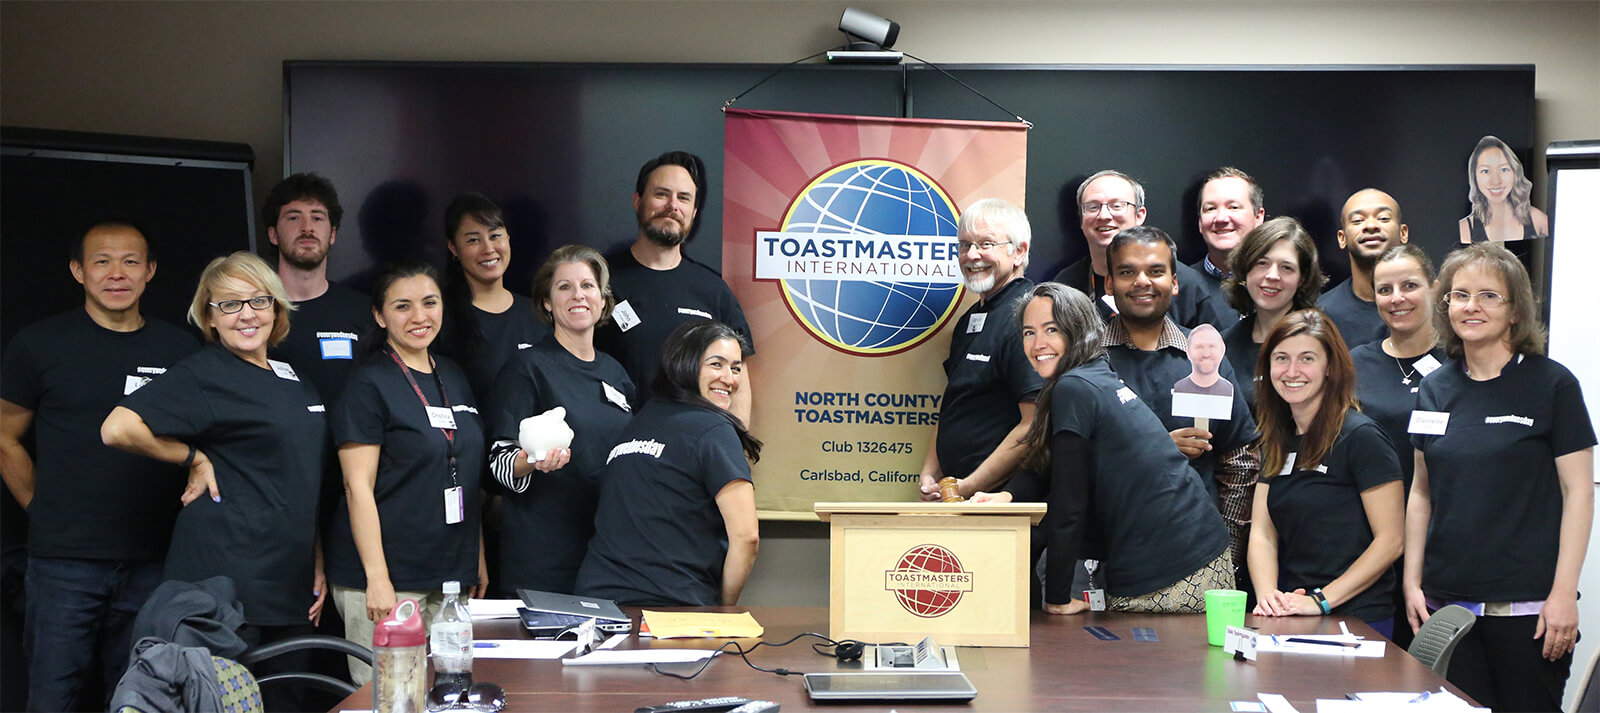 Members of North County Toastmaster club in Carlsbad, California, participate in their #everywednesday campaign to increase awareness and network with colleagues within their company.